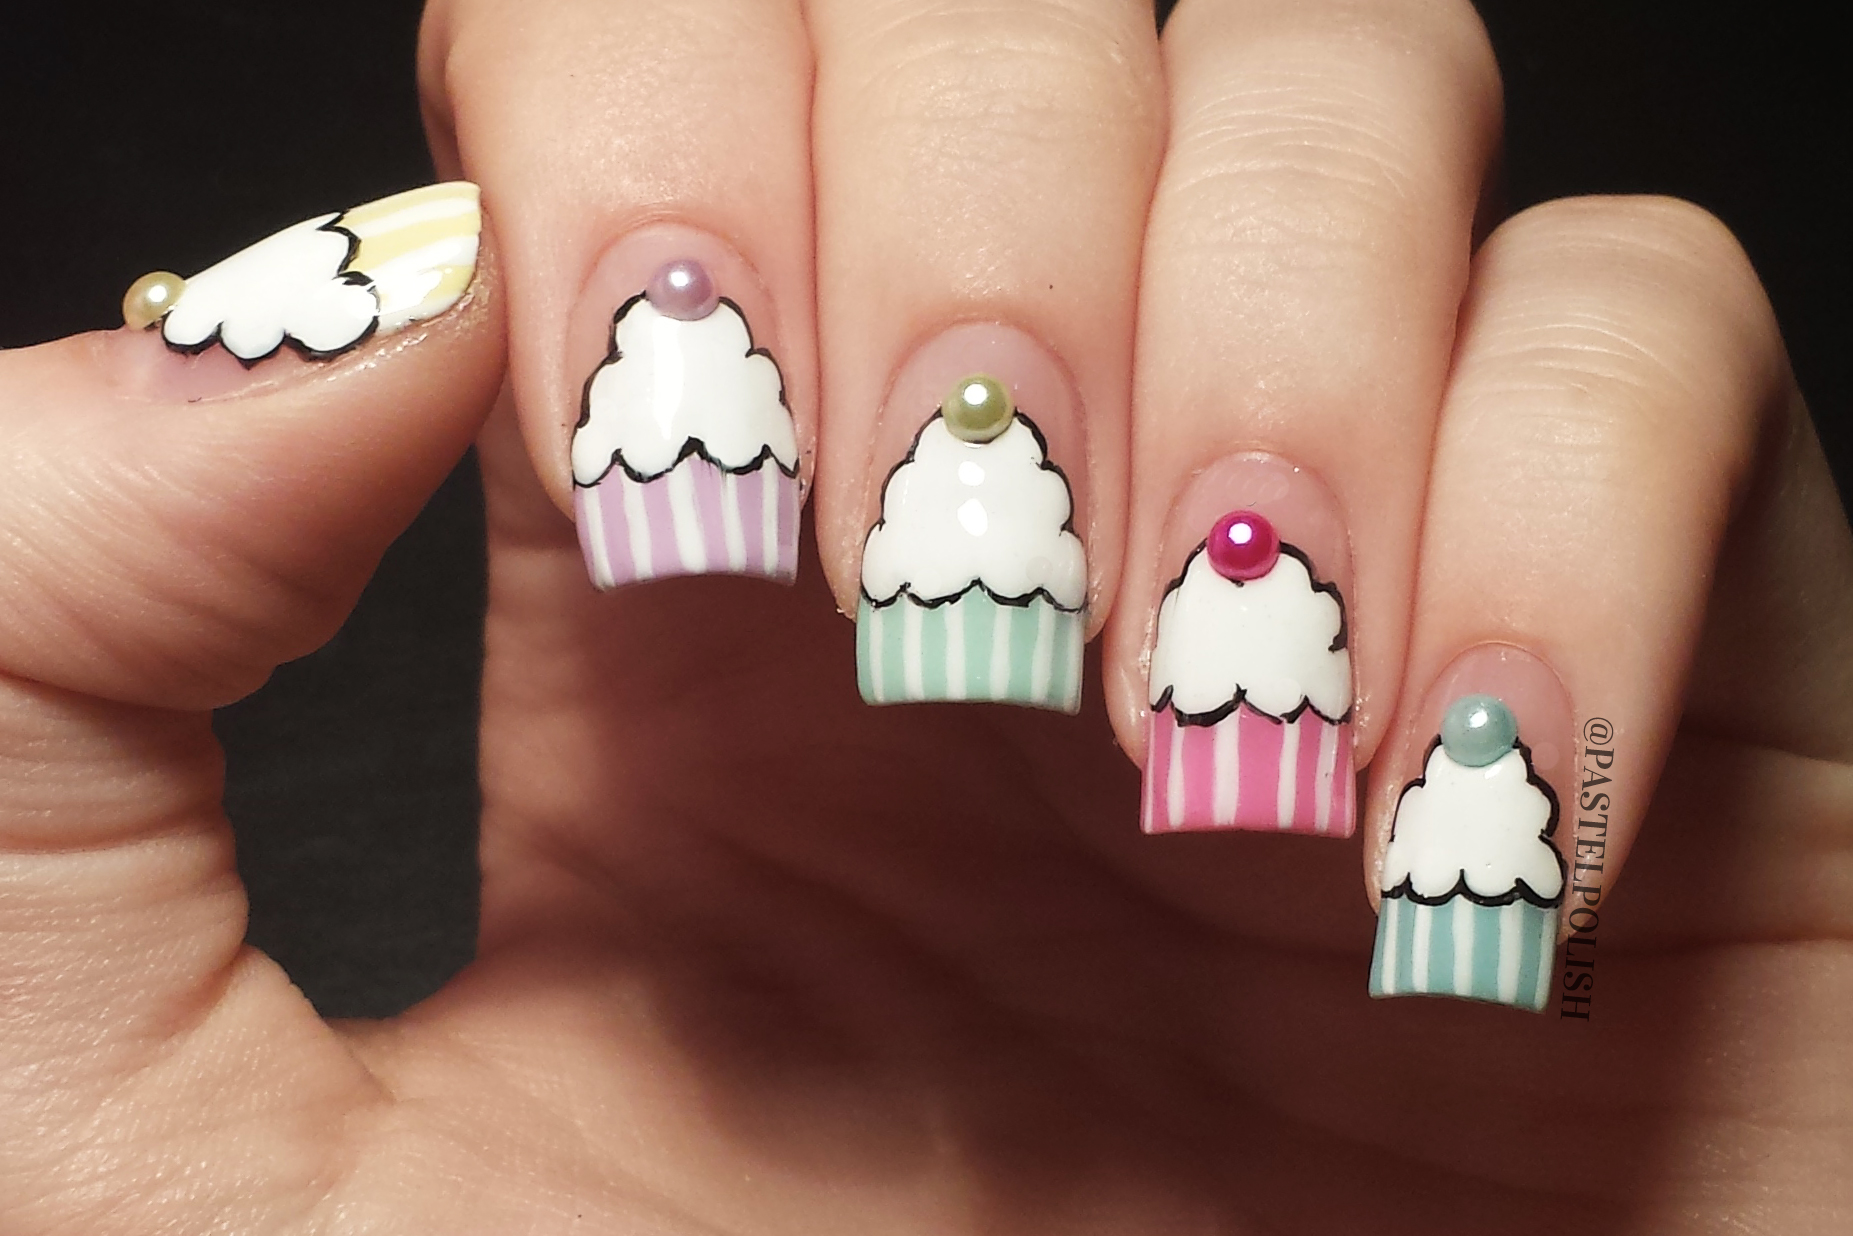 30 Awesome Cupcake Nail Art Designs 2015/16 30 Awesome Cupcake Nail Art Designs 2015/16 cupcake nail art design 7